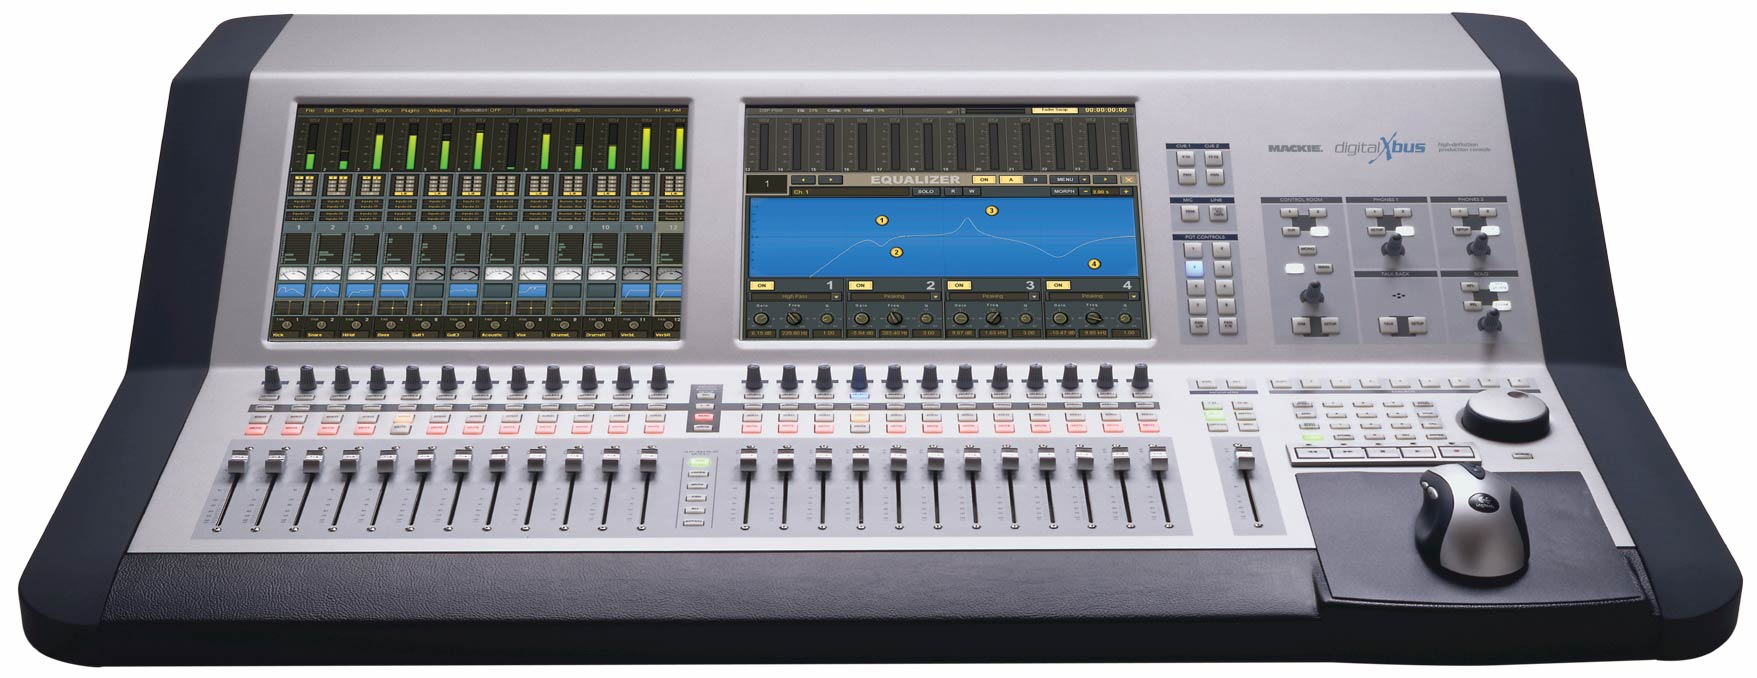 StudioLive 32 besides Roland At900 Atelier Organ likewise Risen in addition 182321128505 as well D2XFZBBBM. on touch screen digital audio mixer